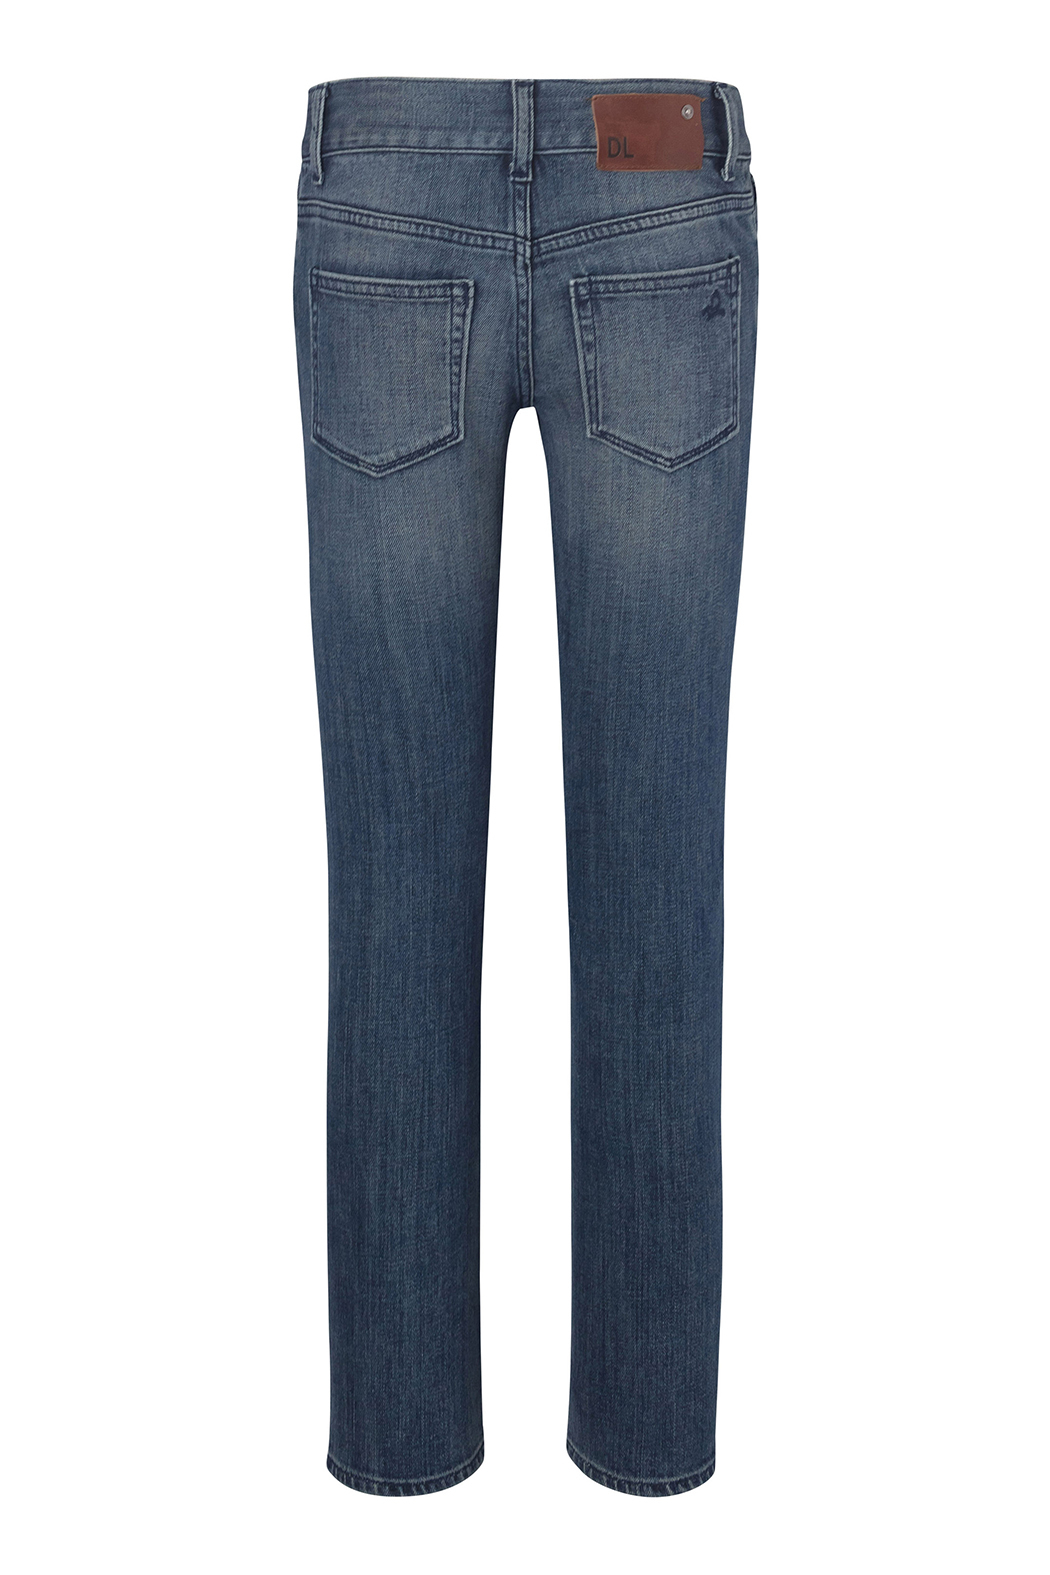 DL1961 Hawke Skinny Child Jeans Scabbard - Front Full Image